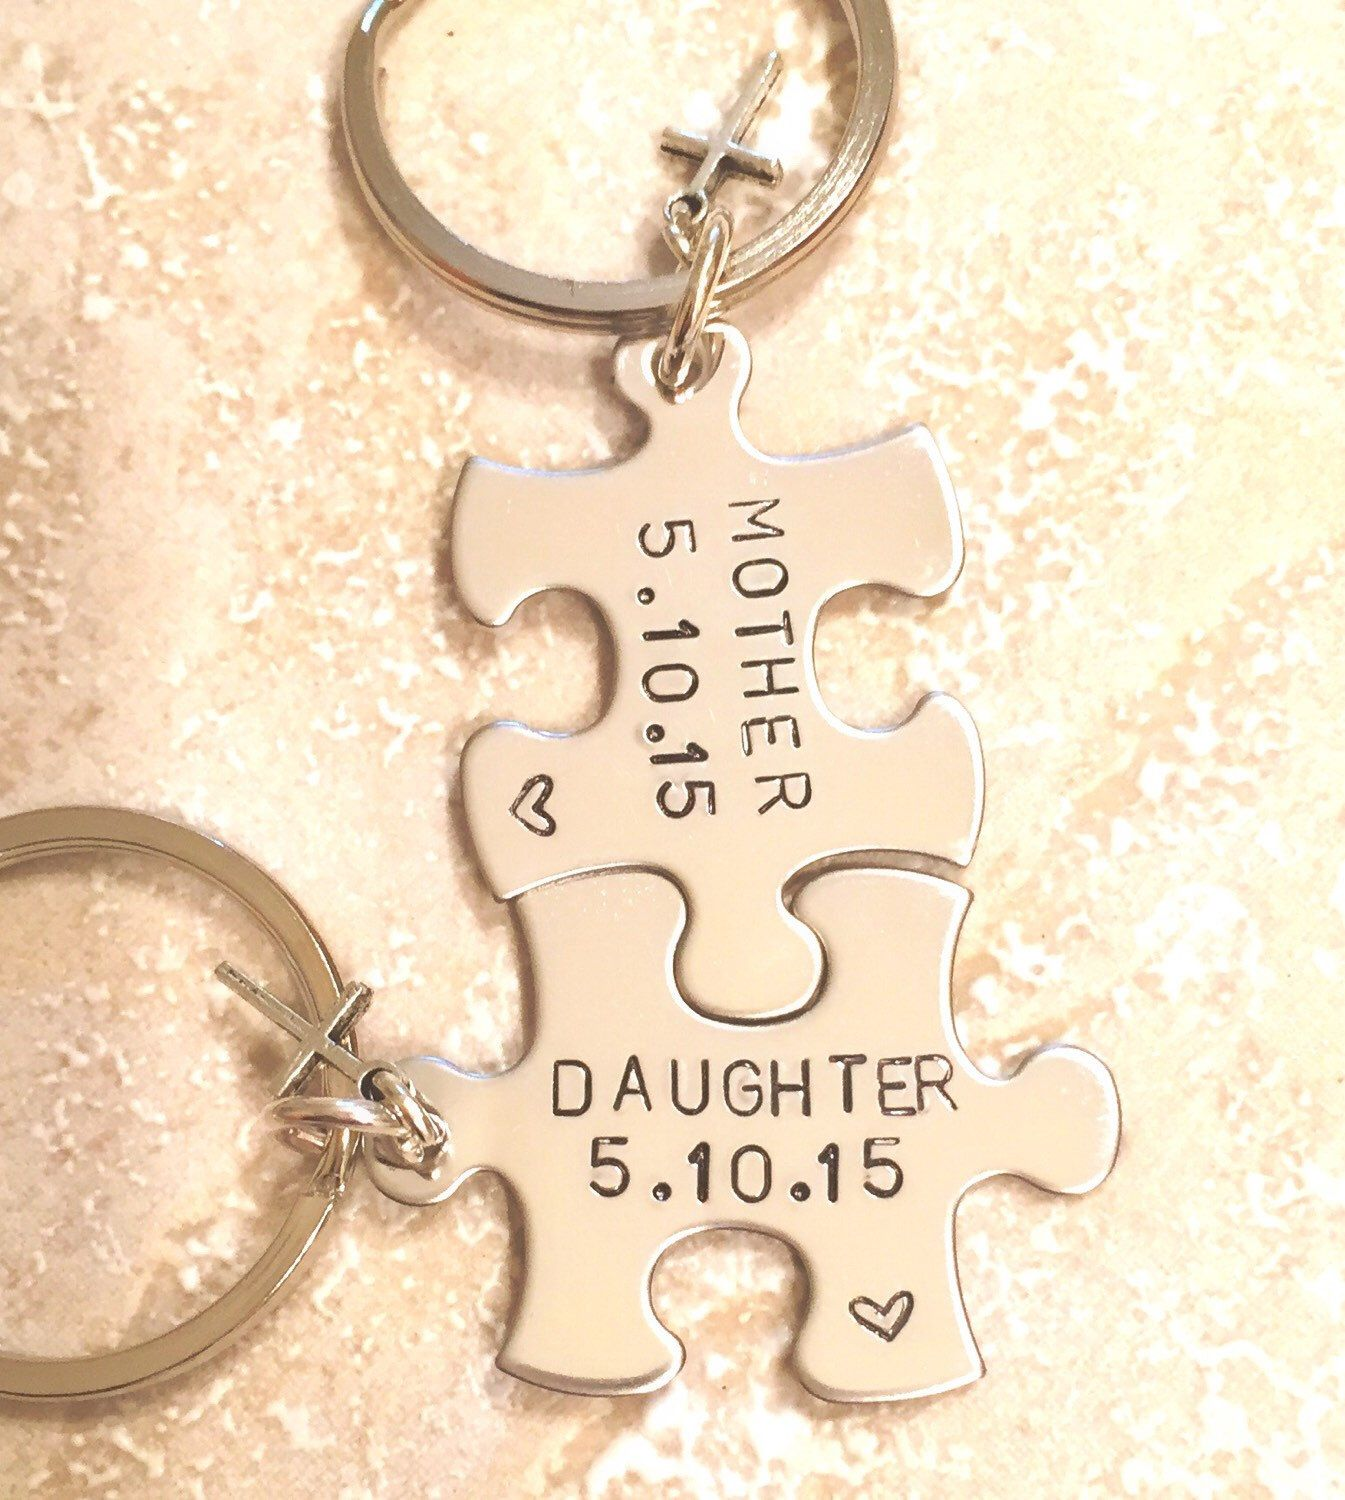 Mother Daughter Gifts Keychain Valentine S Day Gift Personalized Keychains Natashaaloha